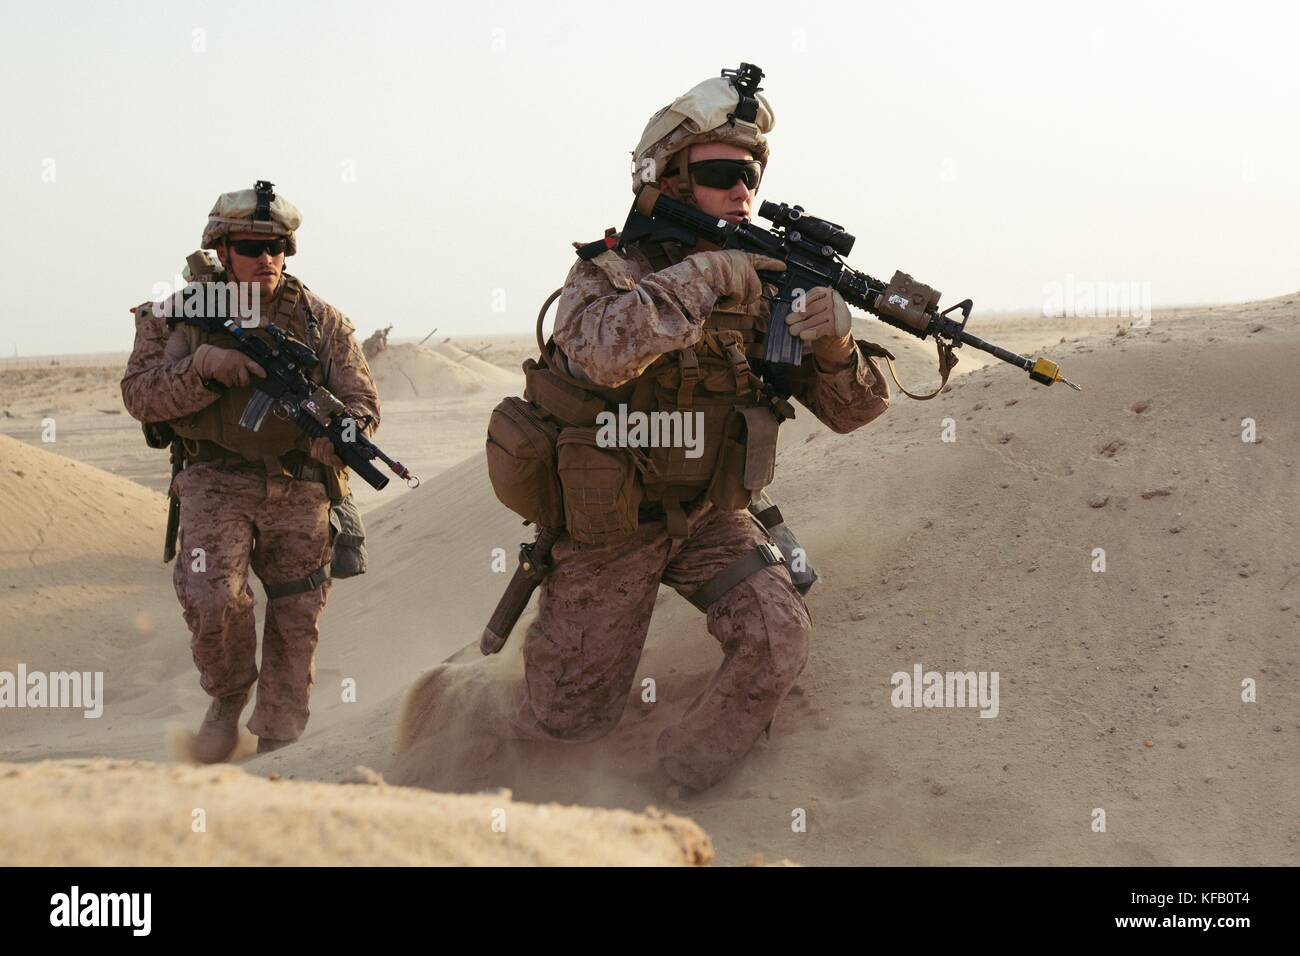 U.S. Marine Cpl. Matthew Lecompte and Lance Cpl. Dulton James with 2nd Battalion, 7th Marine Regiment run toward simulated casualties while training in the Middle East, Oct. 10, 2017. They are members of a quick reaction force that is capable of responding to developing situations on short notice. Marines with 2/7 were tasked to conduct a QRF to quickly recover simulated casualties and take them back to safety. This was the first exercise 2/7 has conducted after replacing 1st Battalion, 7th Marine Regiment in the U.S. Central Command area of operations.  (photo by Cpl. Jocelyn Ontiveros via Pl Stock Photo